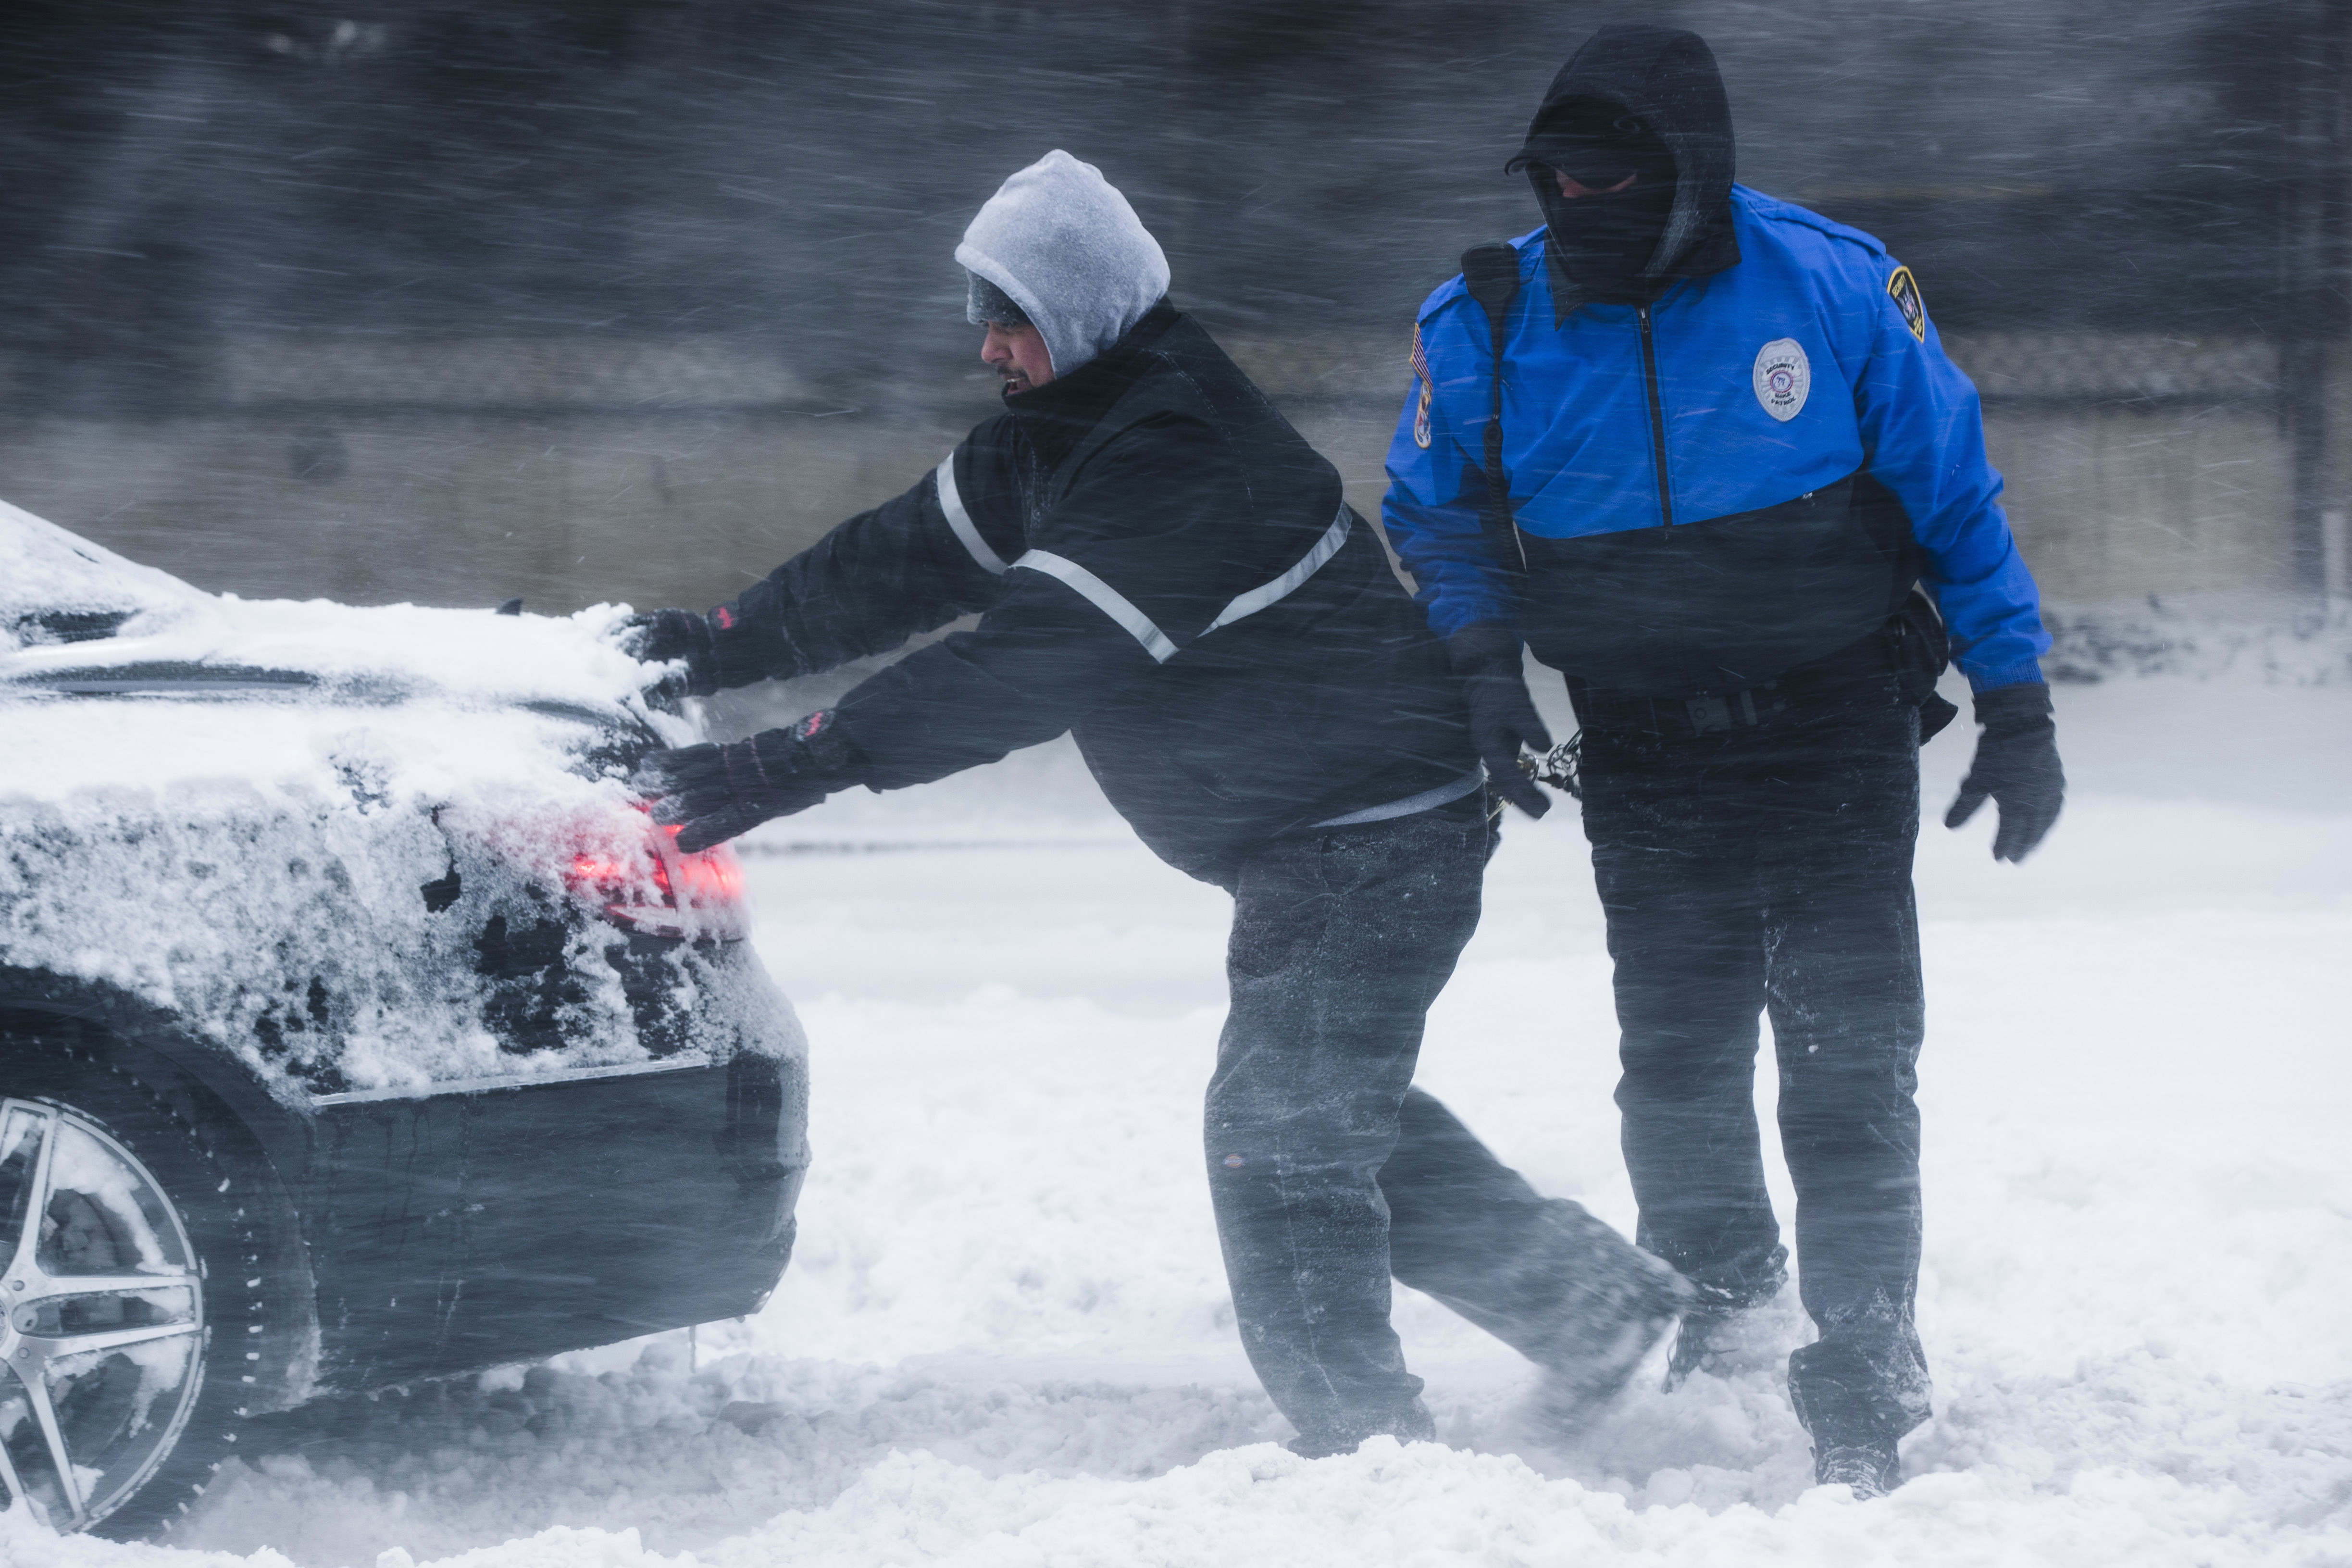 "<div class=""meta image-caption""><div class=""origin-logo origin-image none""><span>none</span></div><span class=""caption-text"">Men work to free a stranded car during a winter snowstorm in Atlantic City, N.J., Thursday, Jan. 4, 2018. (AP Photo/Matt Rourke) (AP)</span></div>"